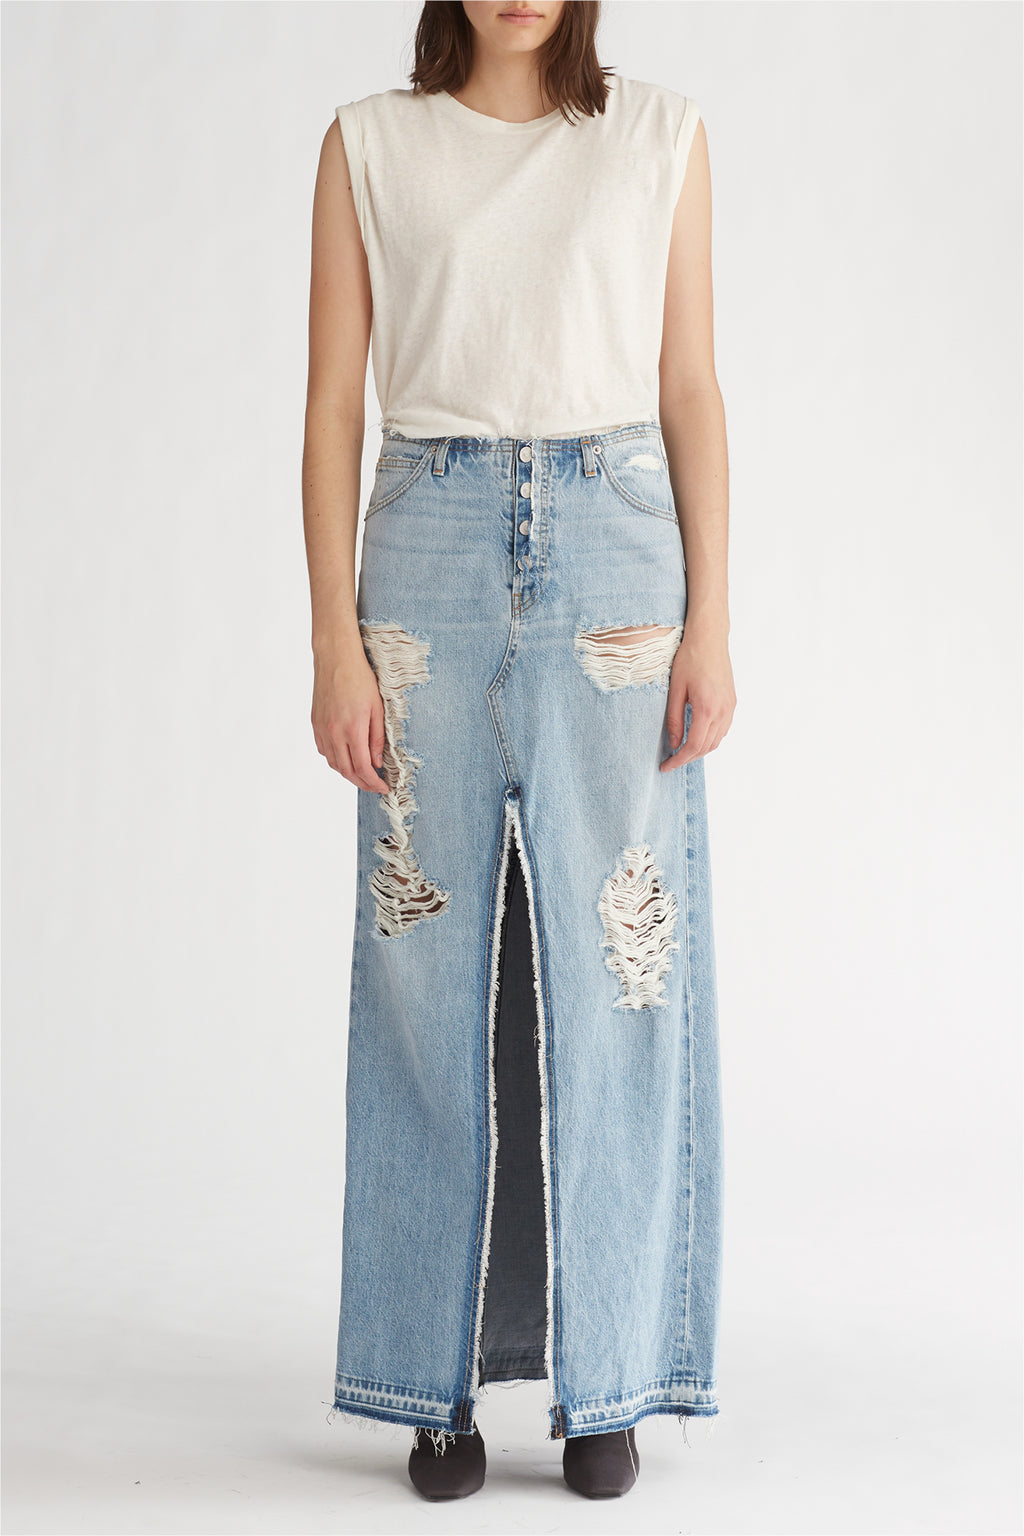 SLOANE LONG DENIM SKIRT - OVERTHROW - Image 1